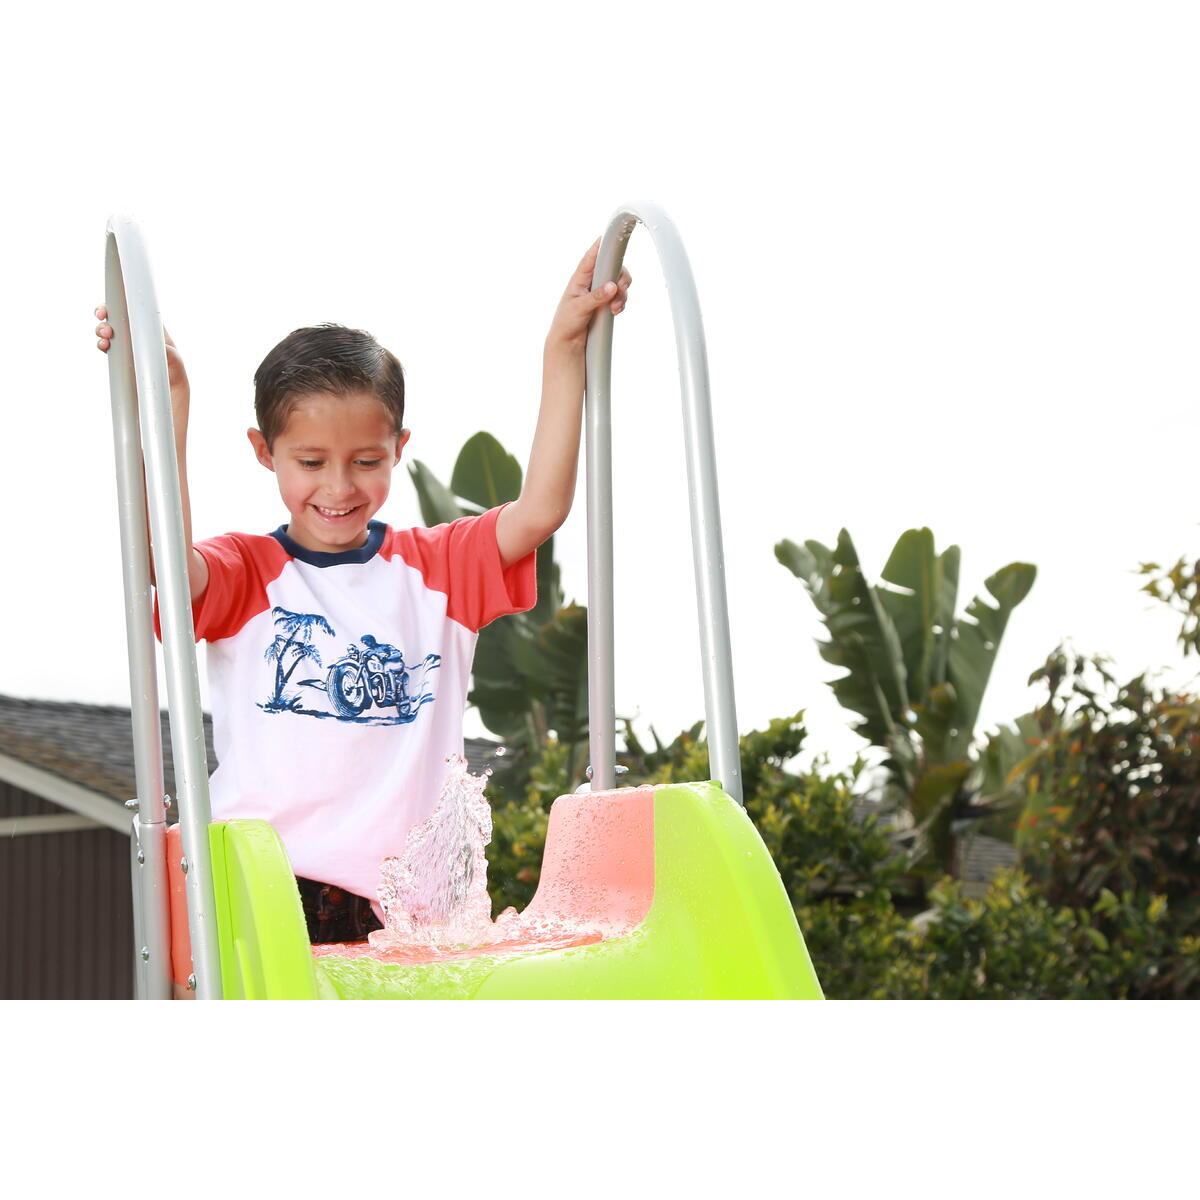 Platports 10ft Kids Playground Slide